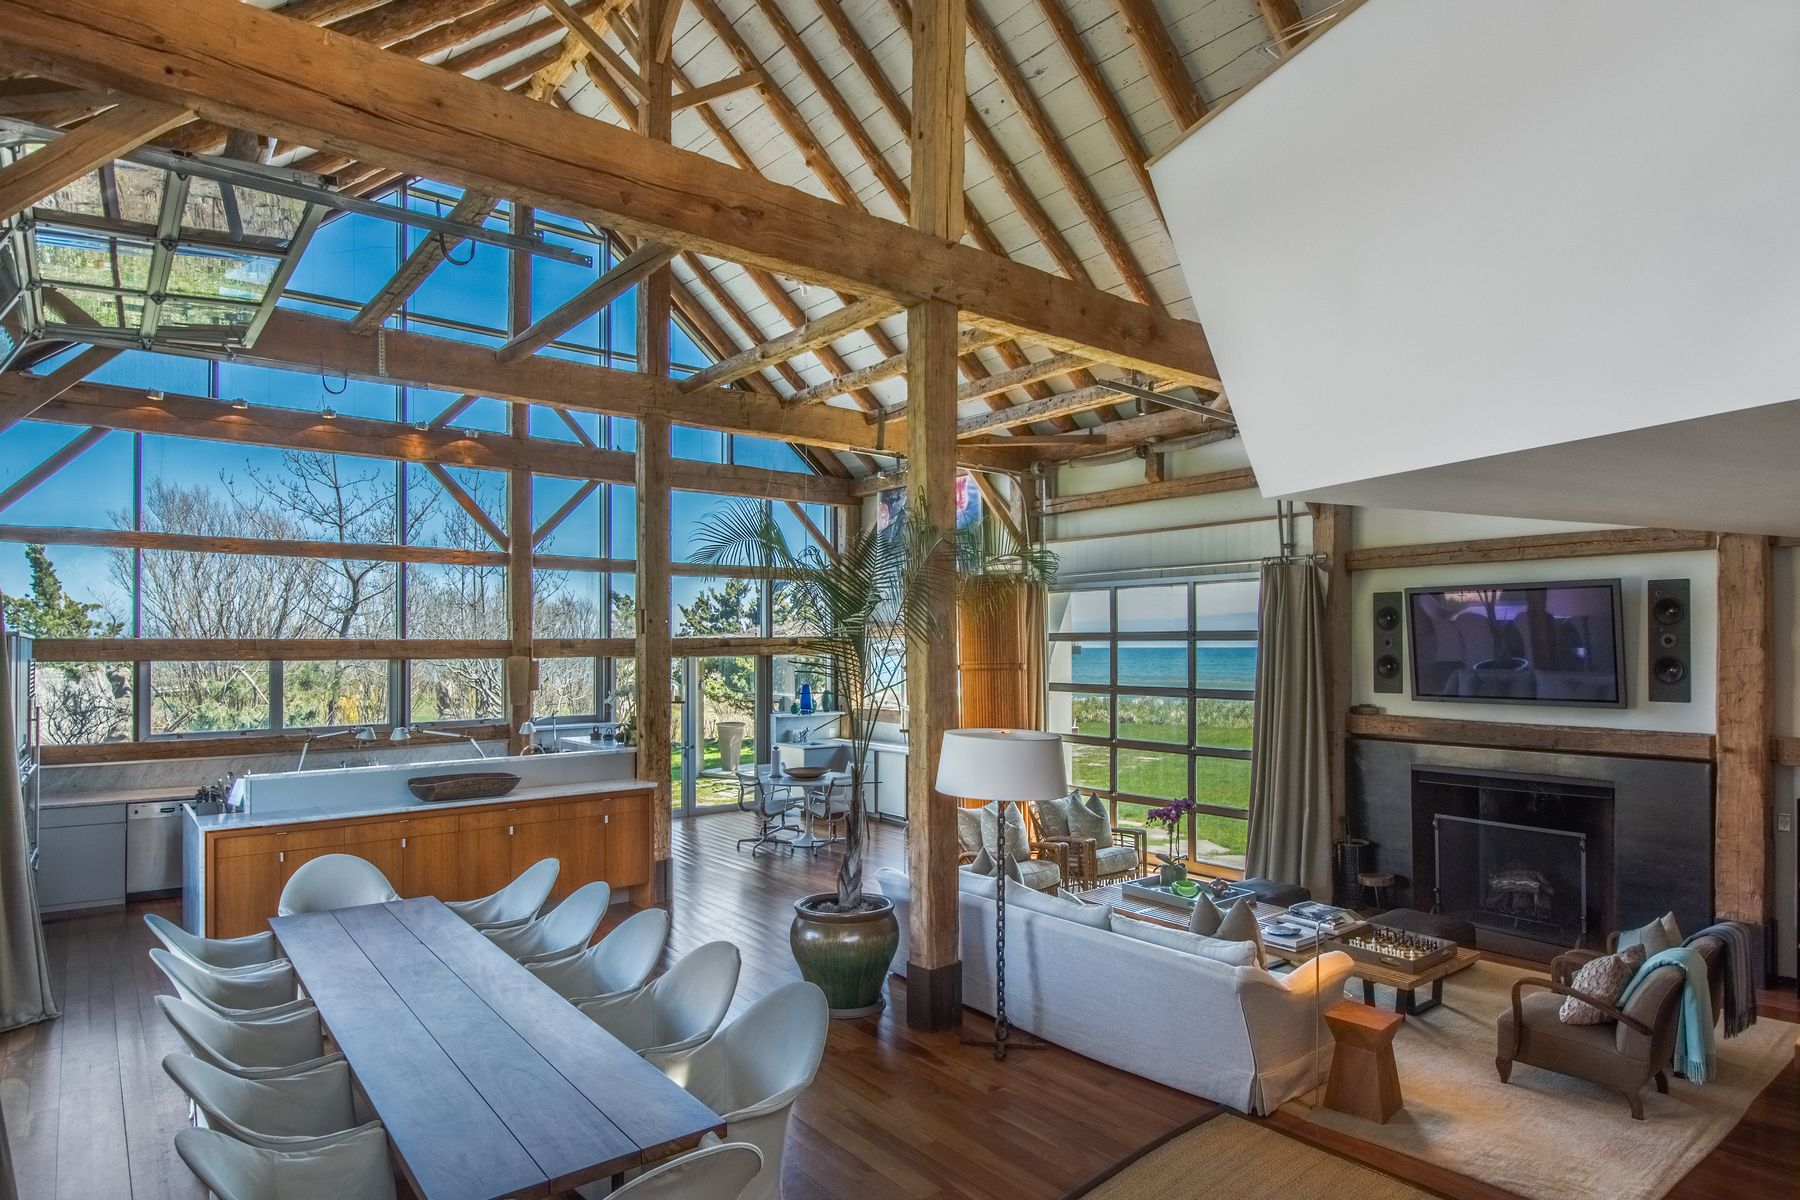 Single Family Homes for Sale at Private Oceanfront Retreat 135 Crestview Lane Sagaponack, New York 11962 United States